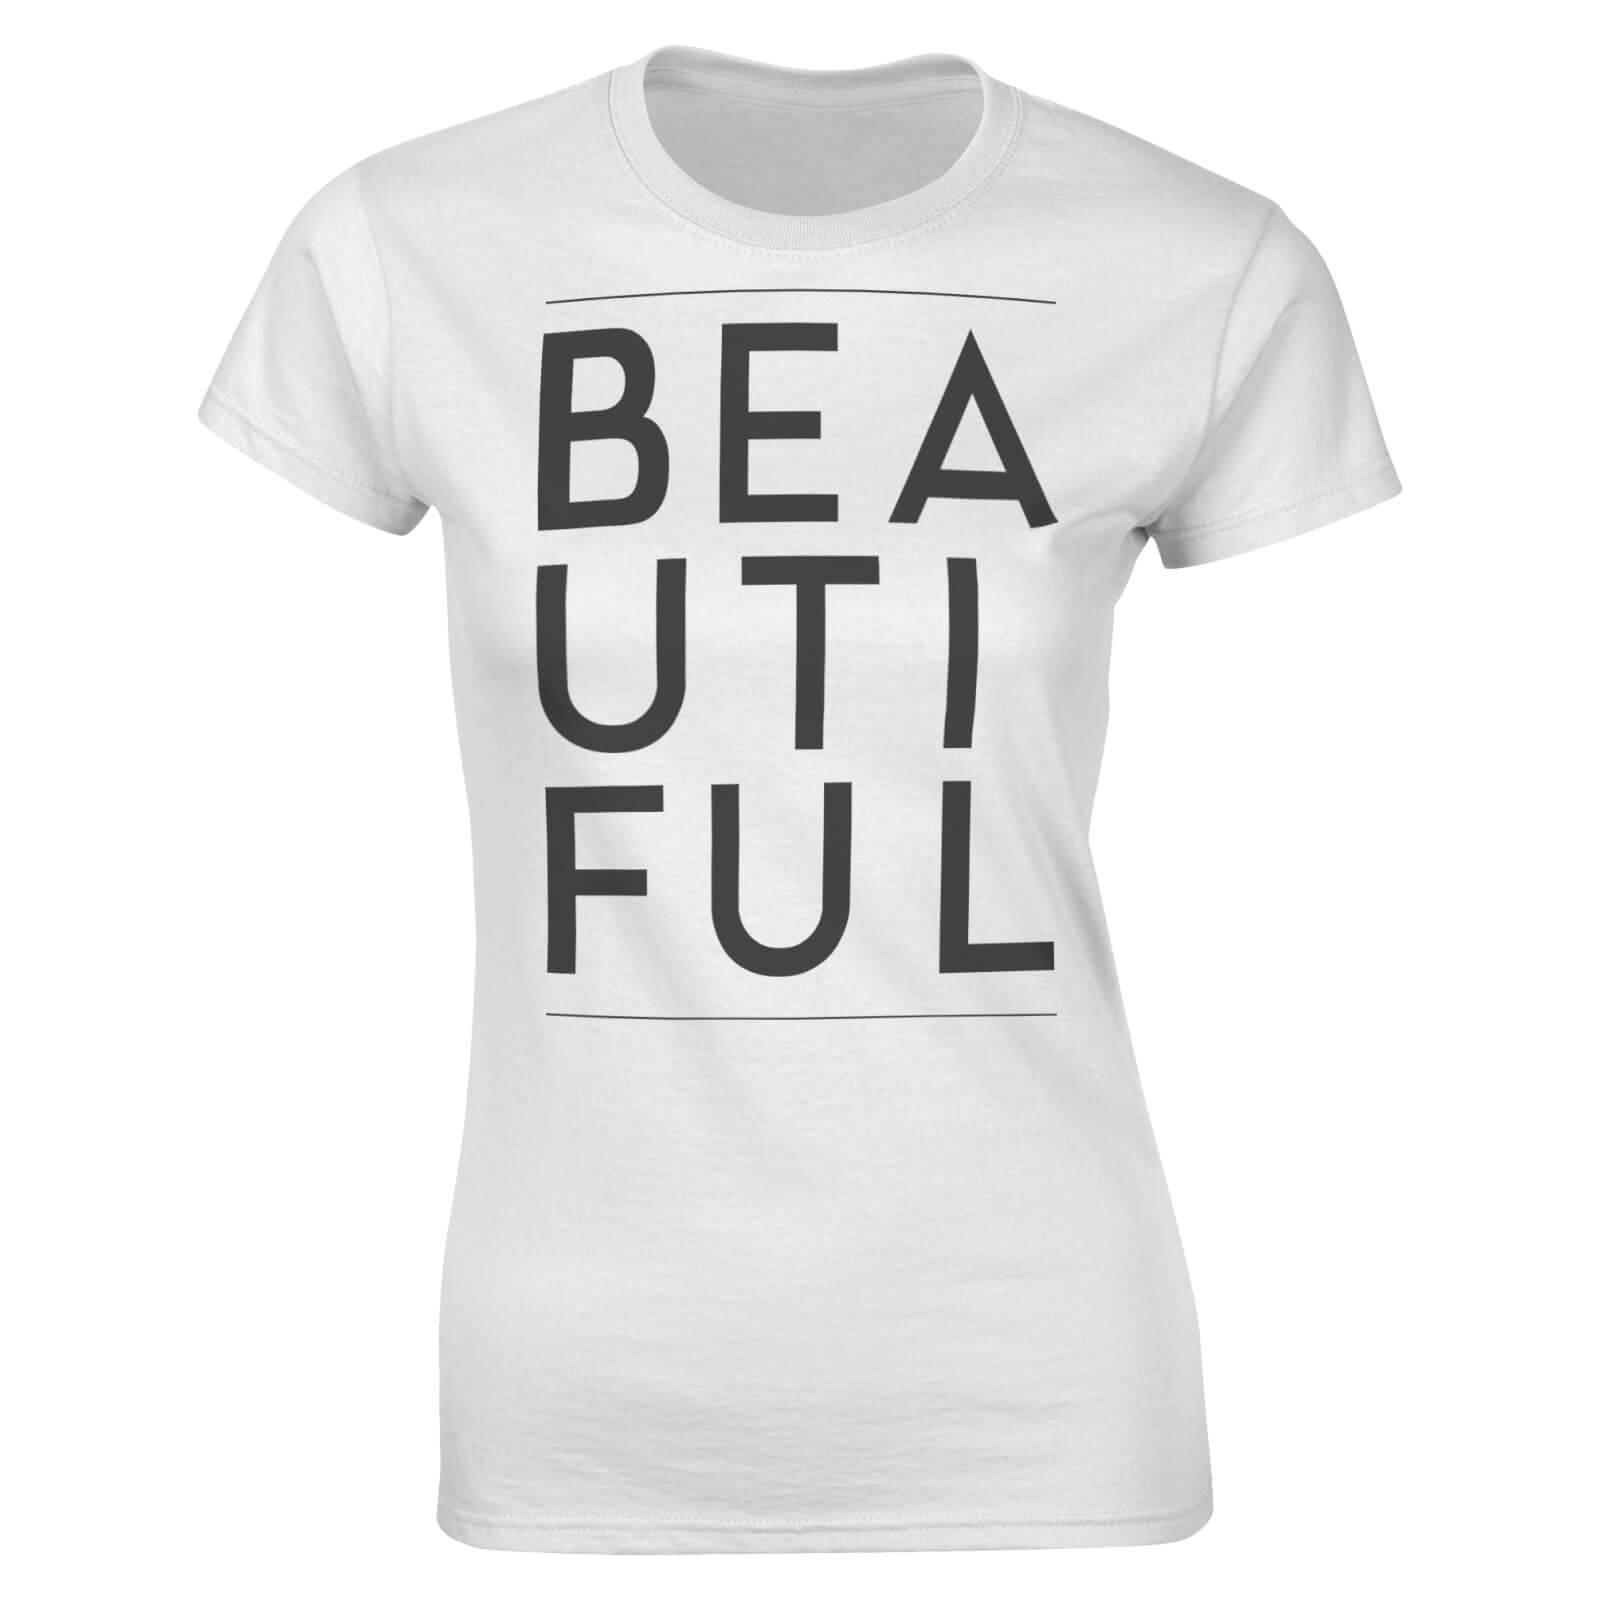 The Valentines Collection Beautiful Women's T-Shirt - White - XL - White